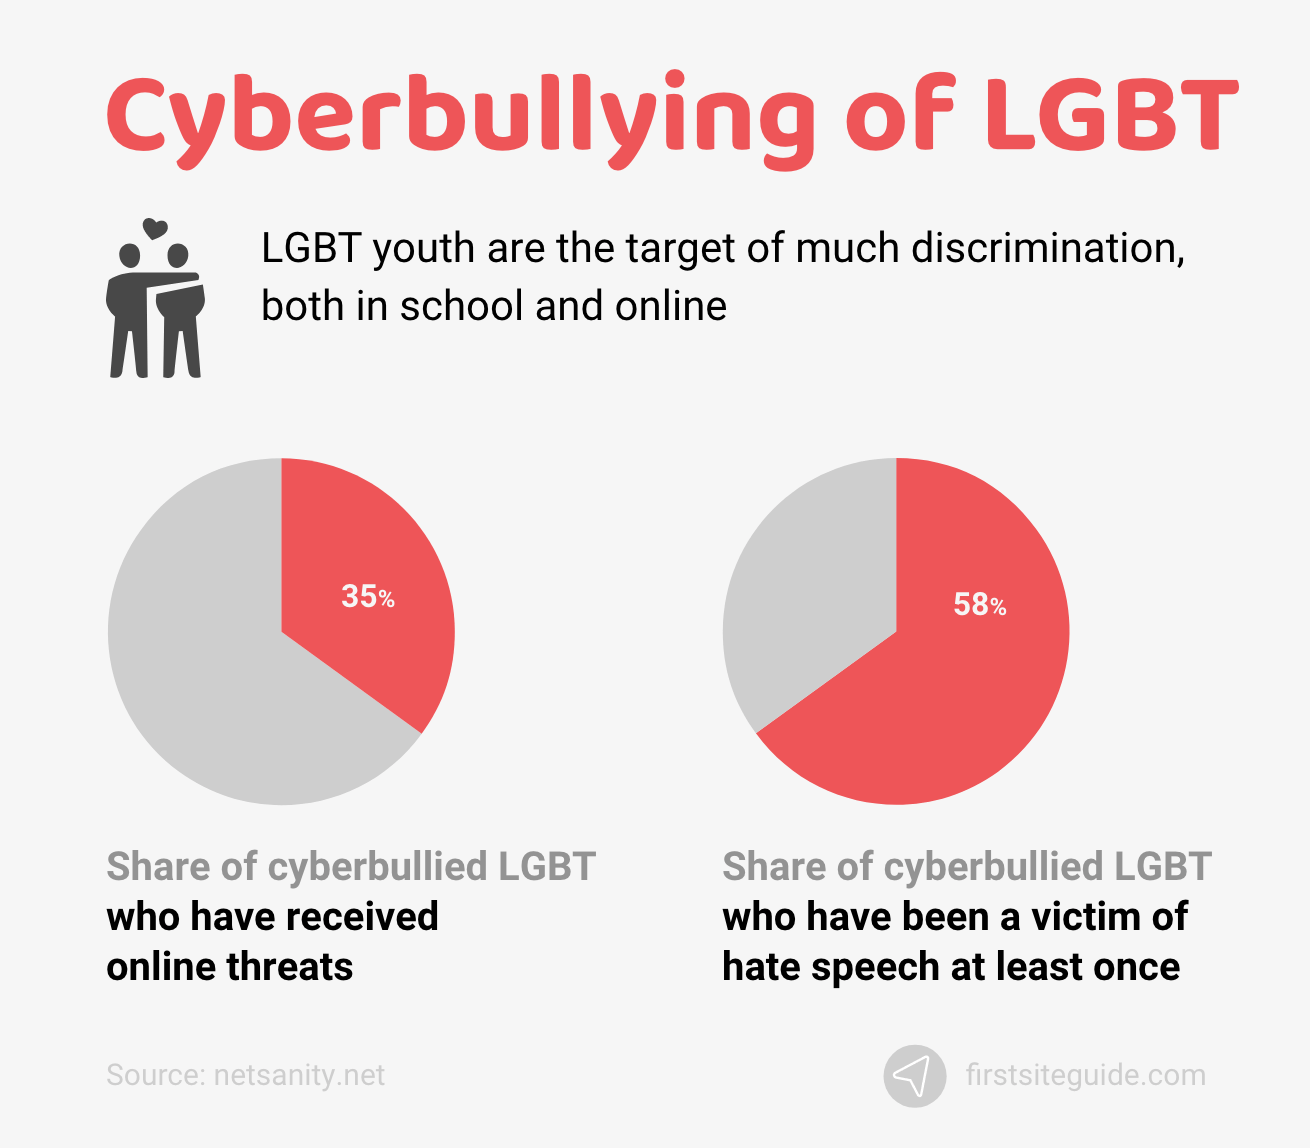 Cyberbullying of LGBT